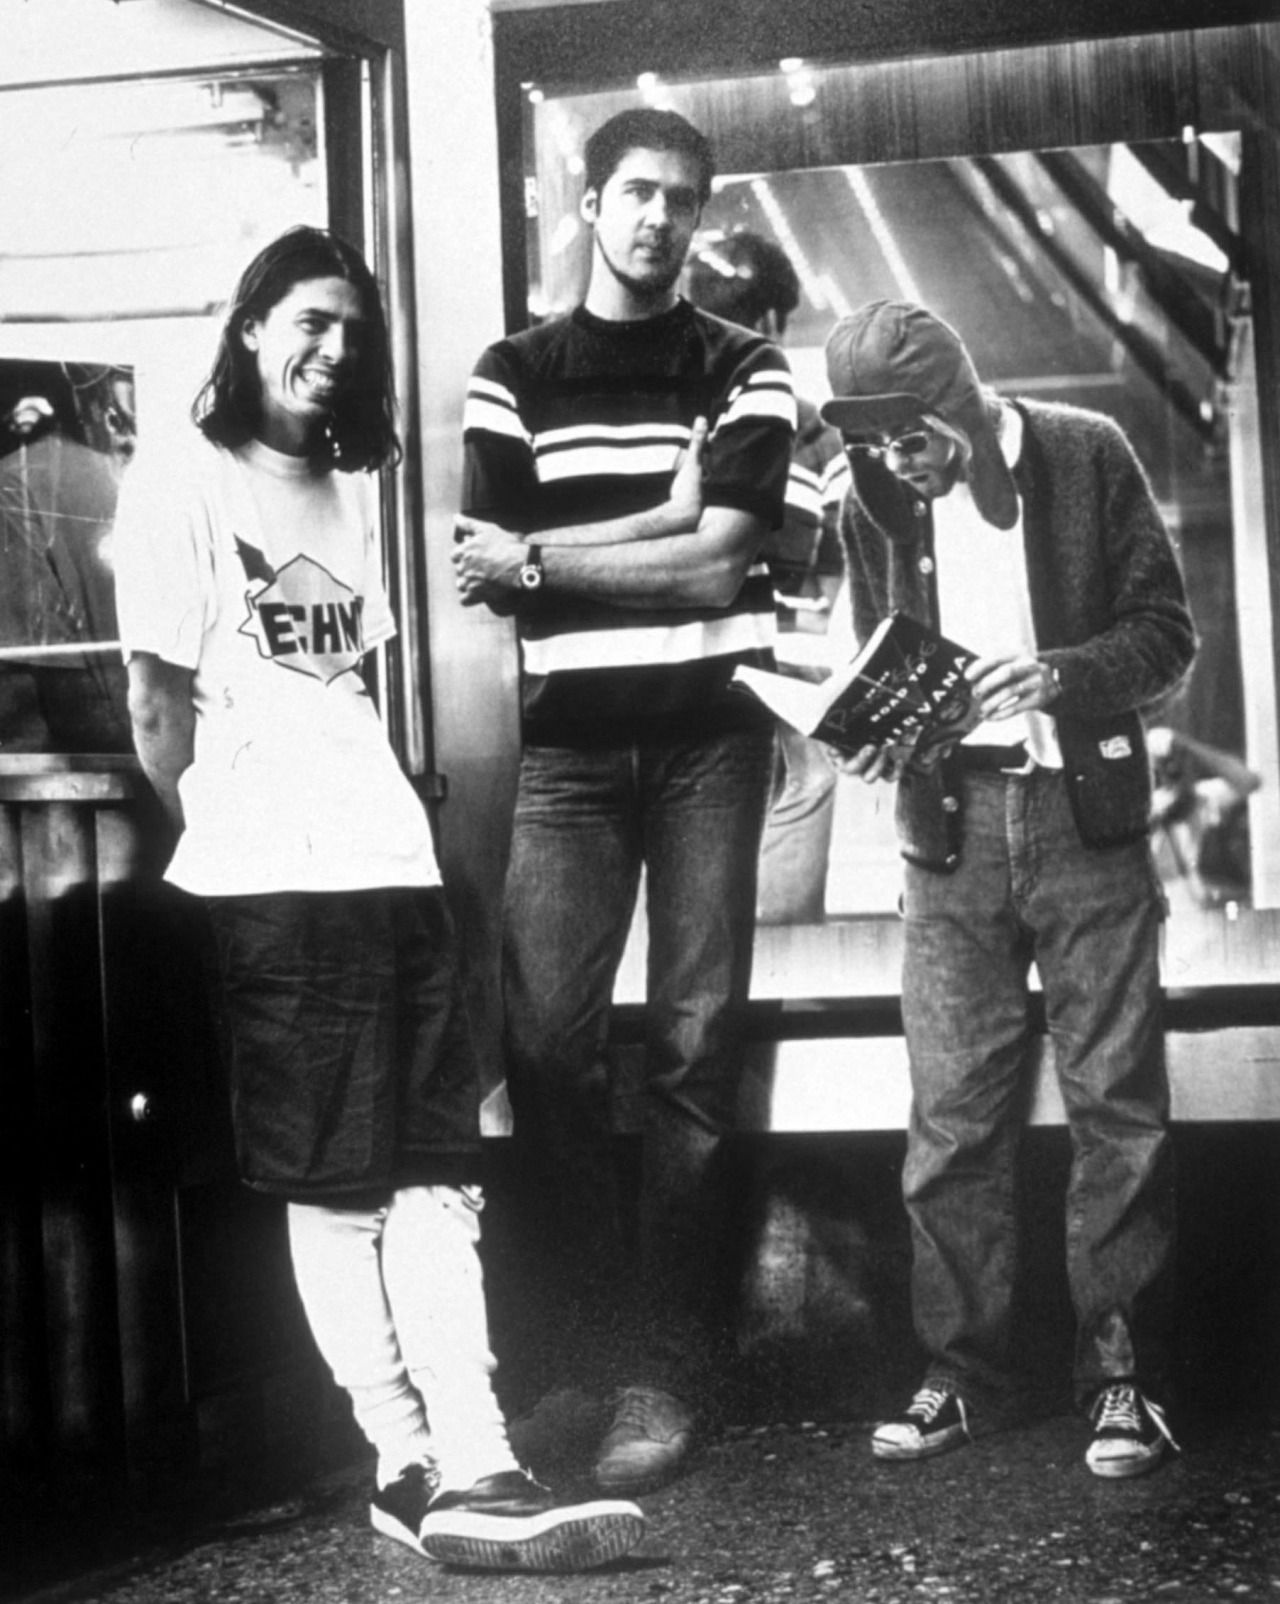 Dave = totally happy. Krist looks done. Kurt looks shocked by the contents of his magazine.